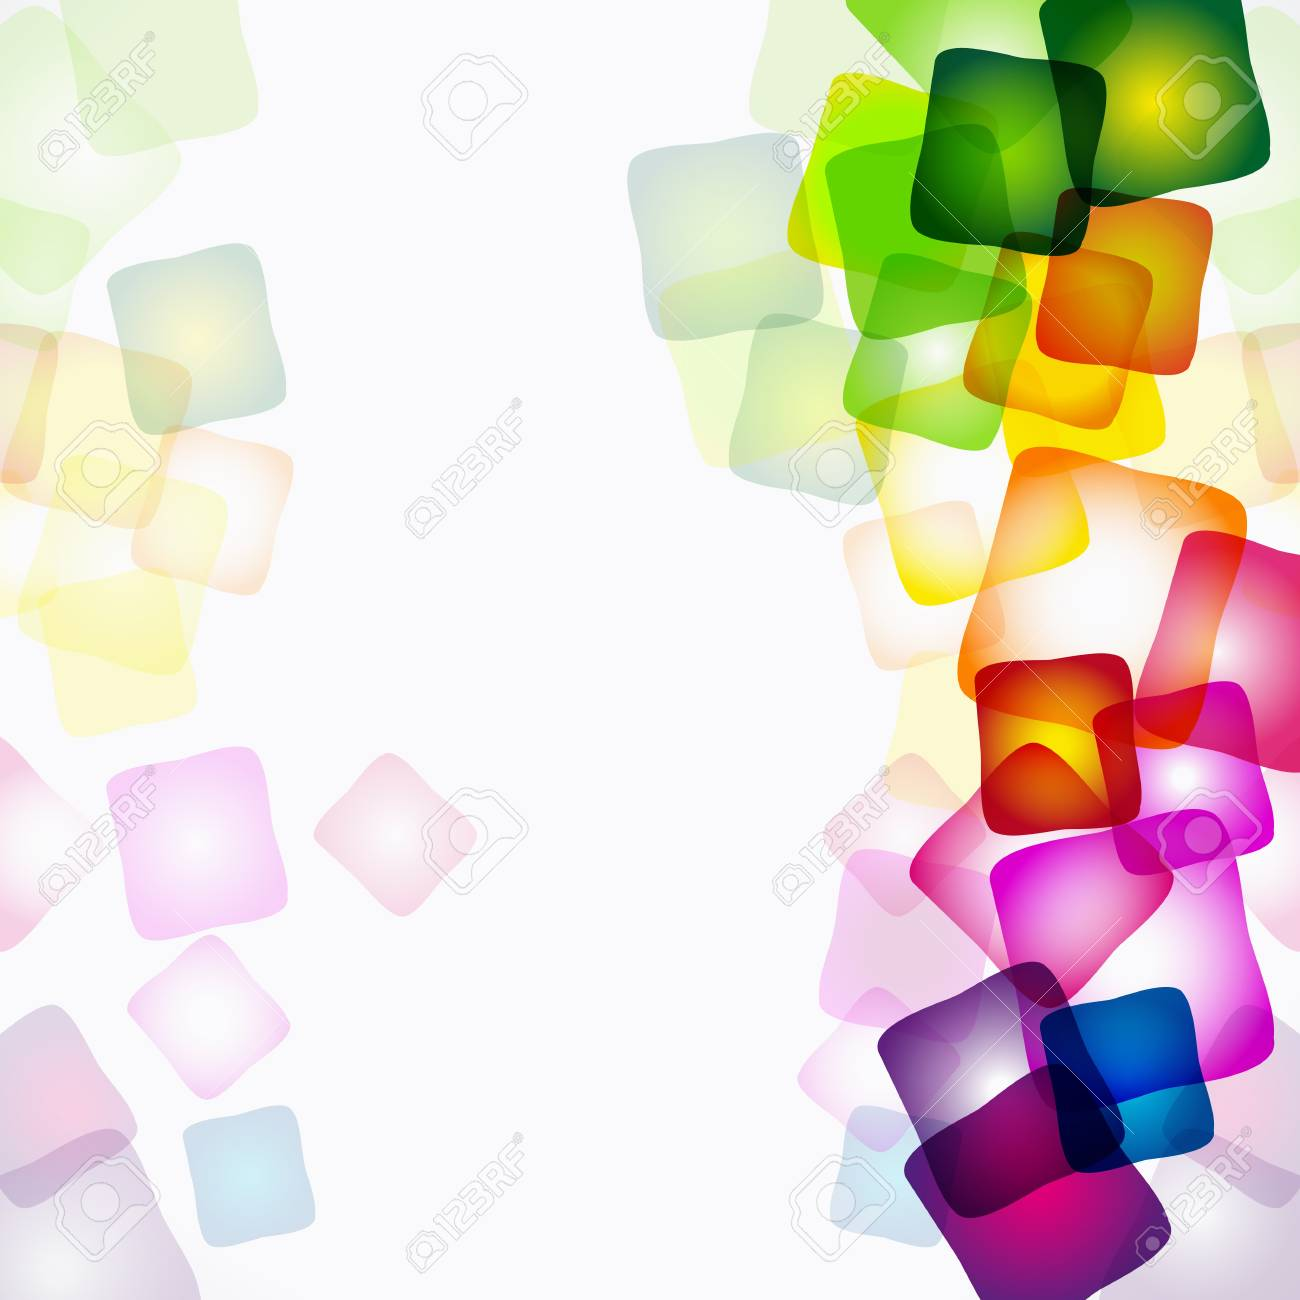 Vector abstract colorful background. Stock Vector - 9668630